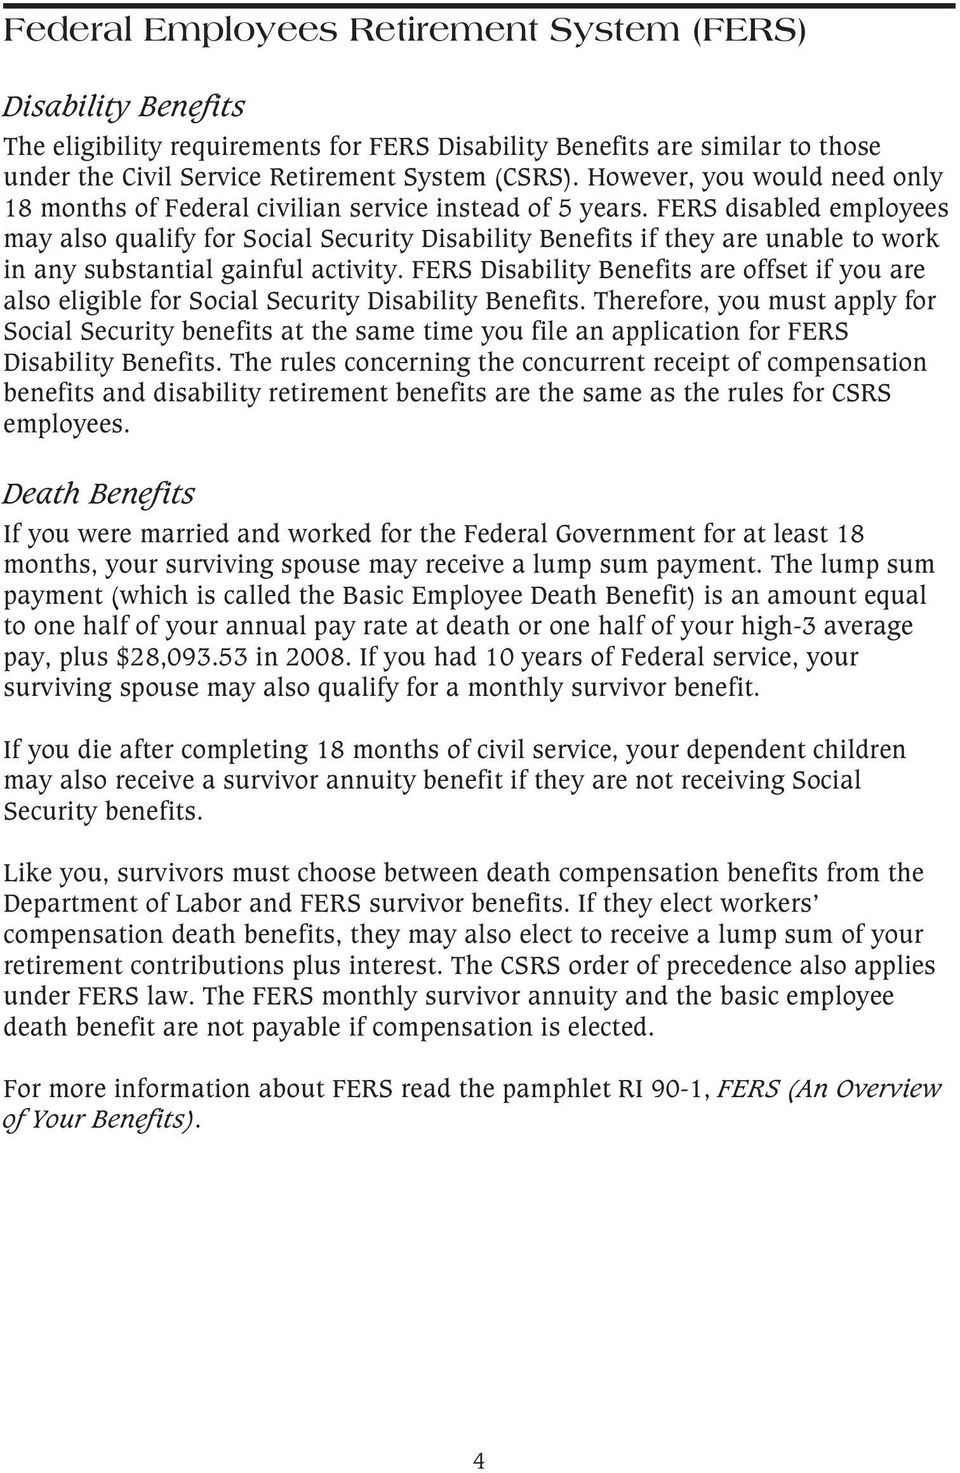 FERS disabled employees may also qualify for Social Security Disability Benefits if they are unable to work in any substantial gainful activity.